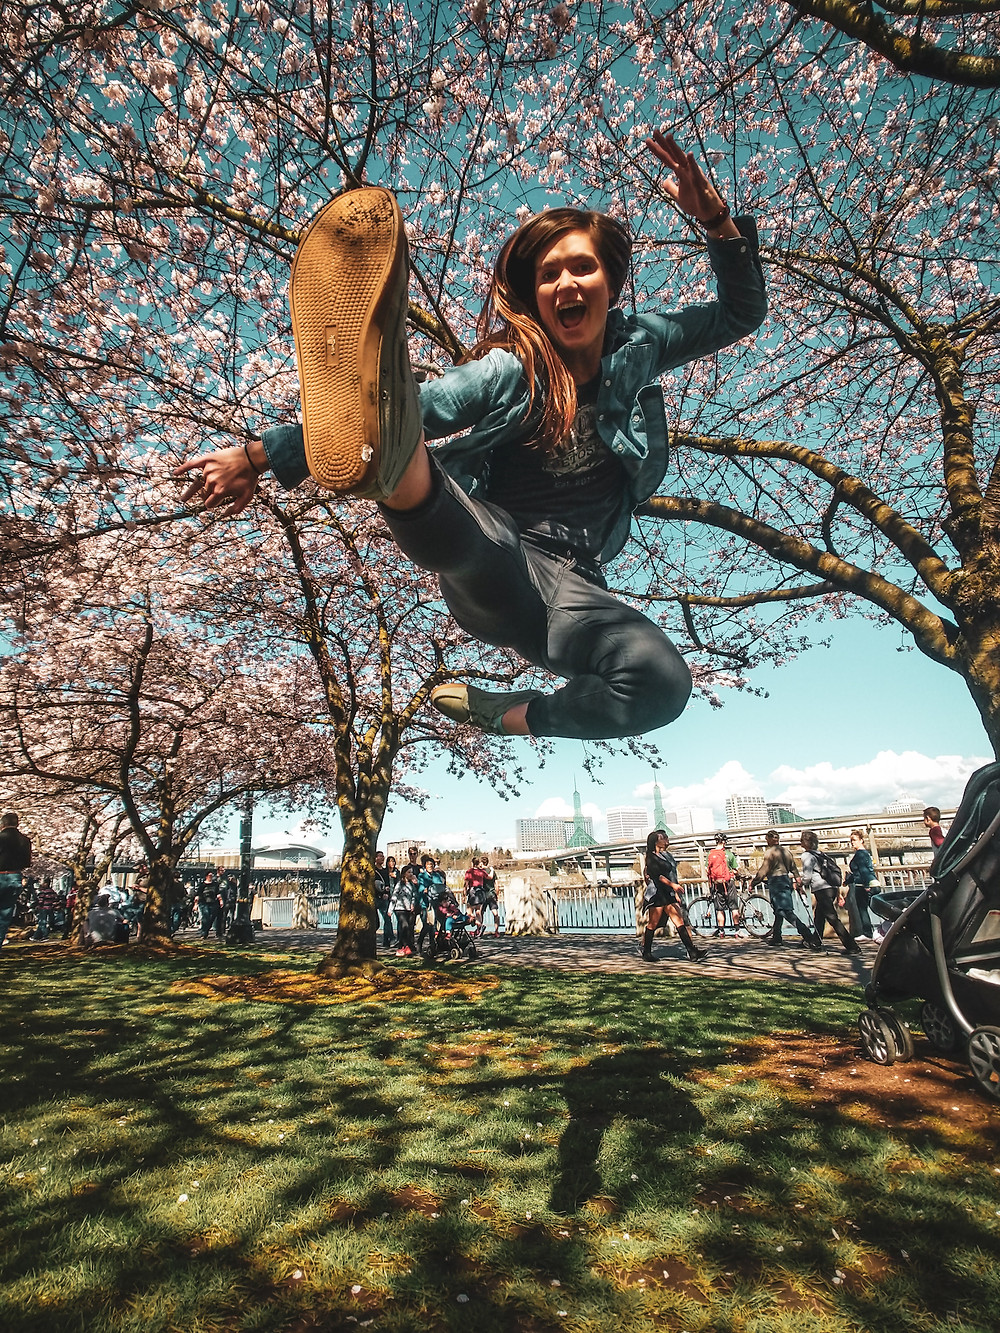 Jumping in front of the cherry trees at the Japanese American Historical Plaza in Portland in the PNW.